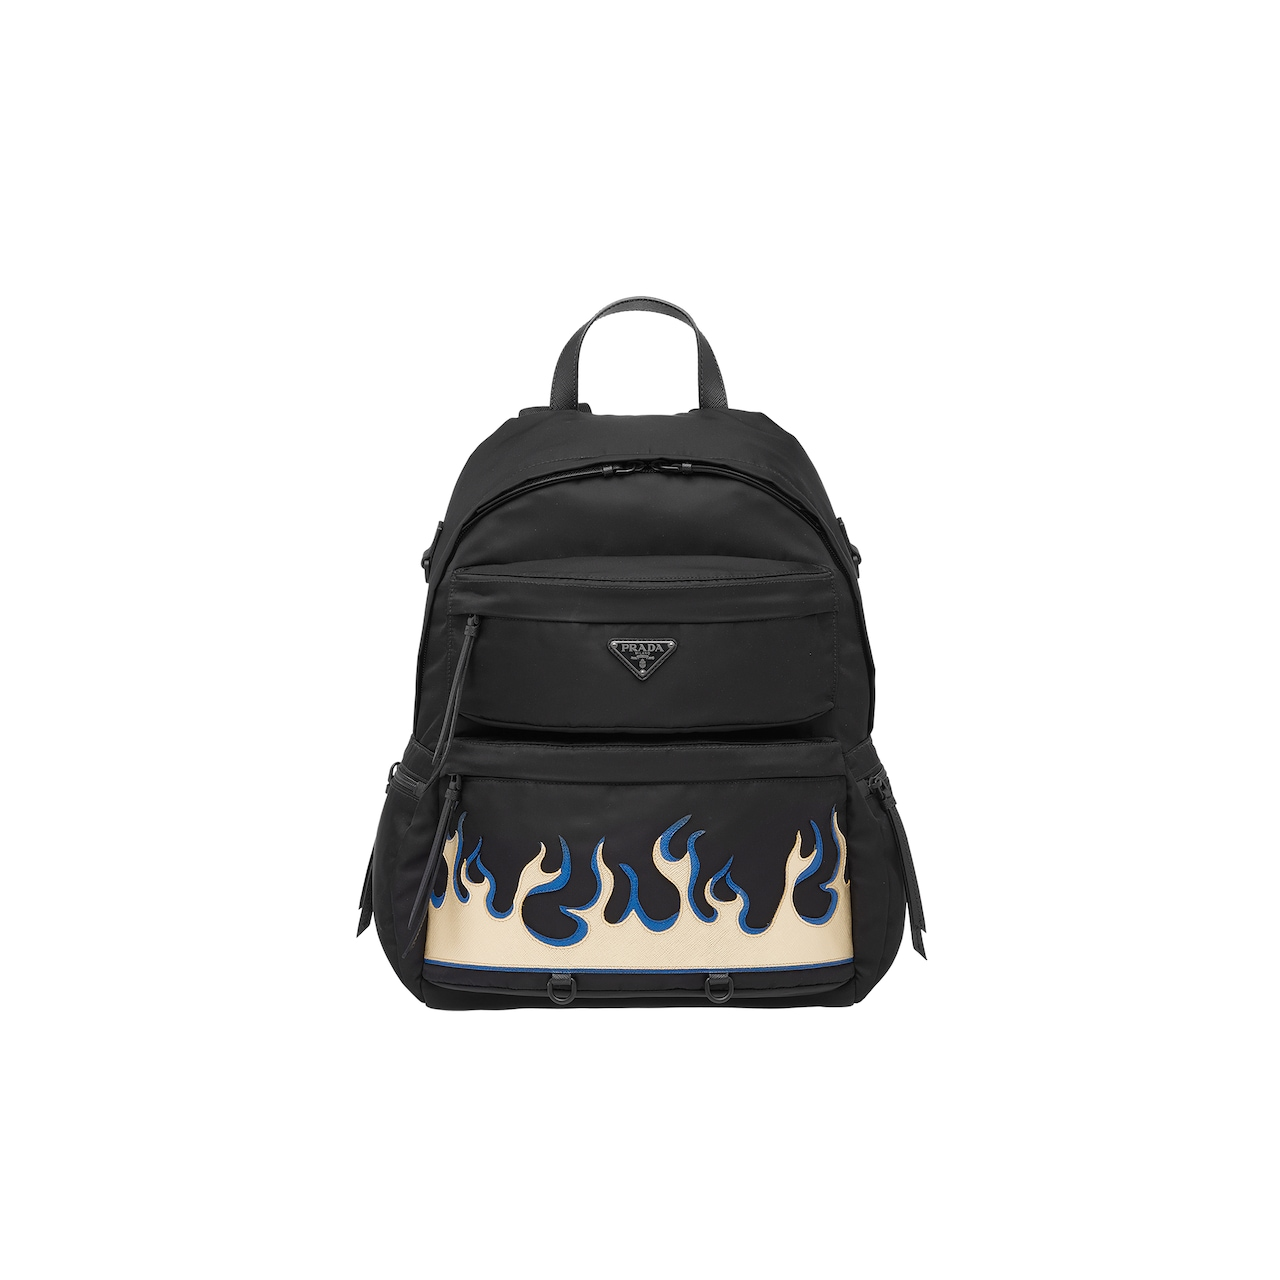 Nylon backpack with Saffiano leather inserts